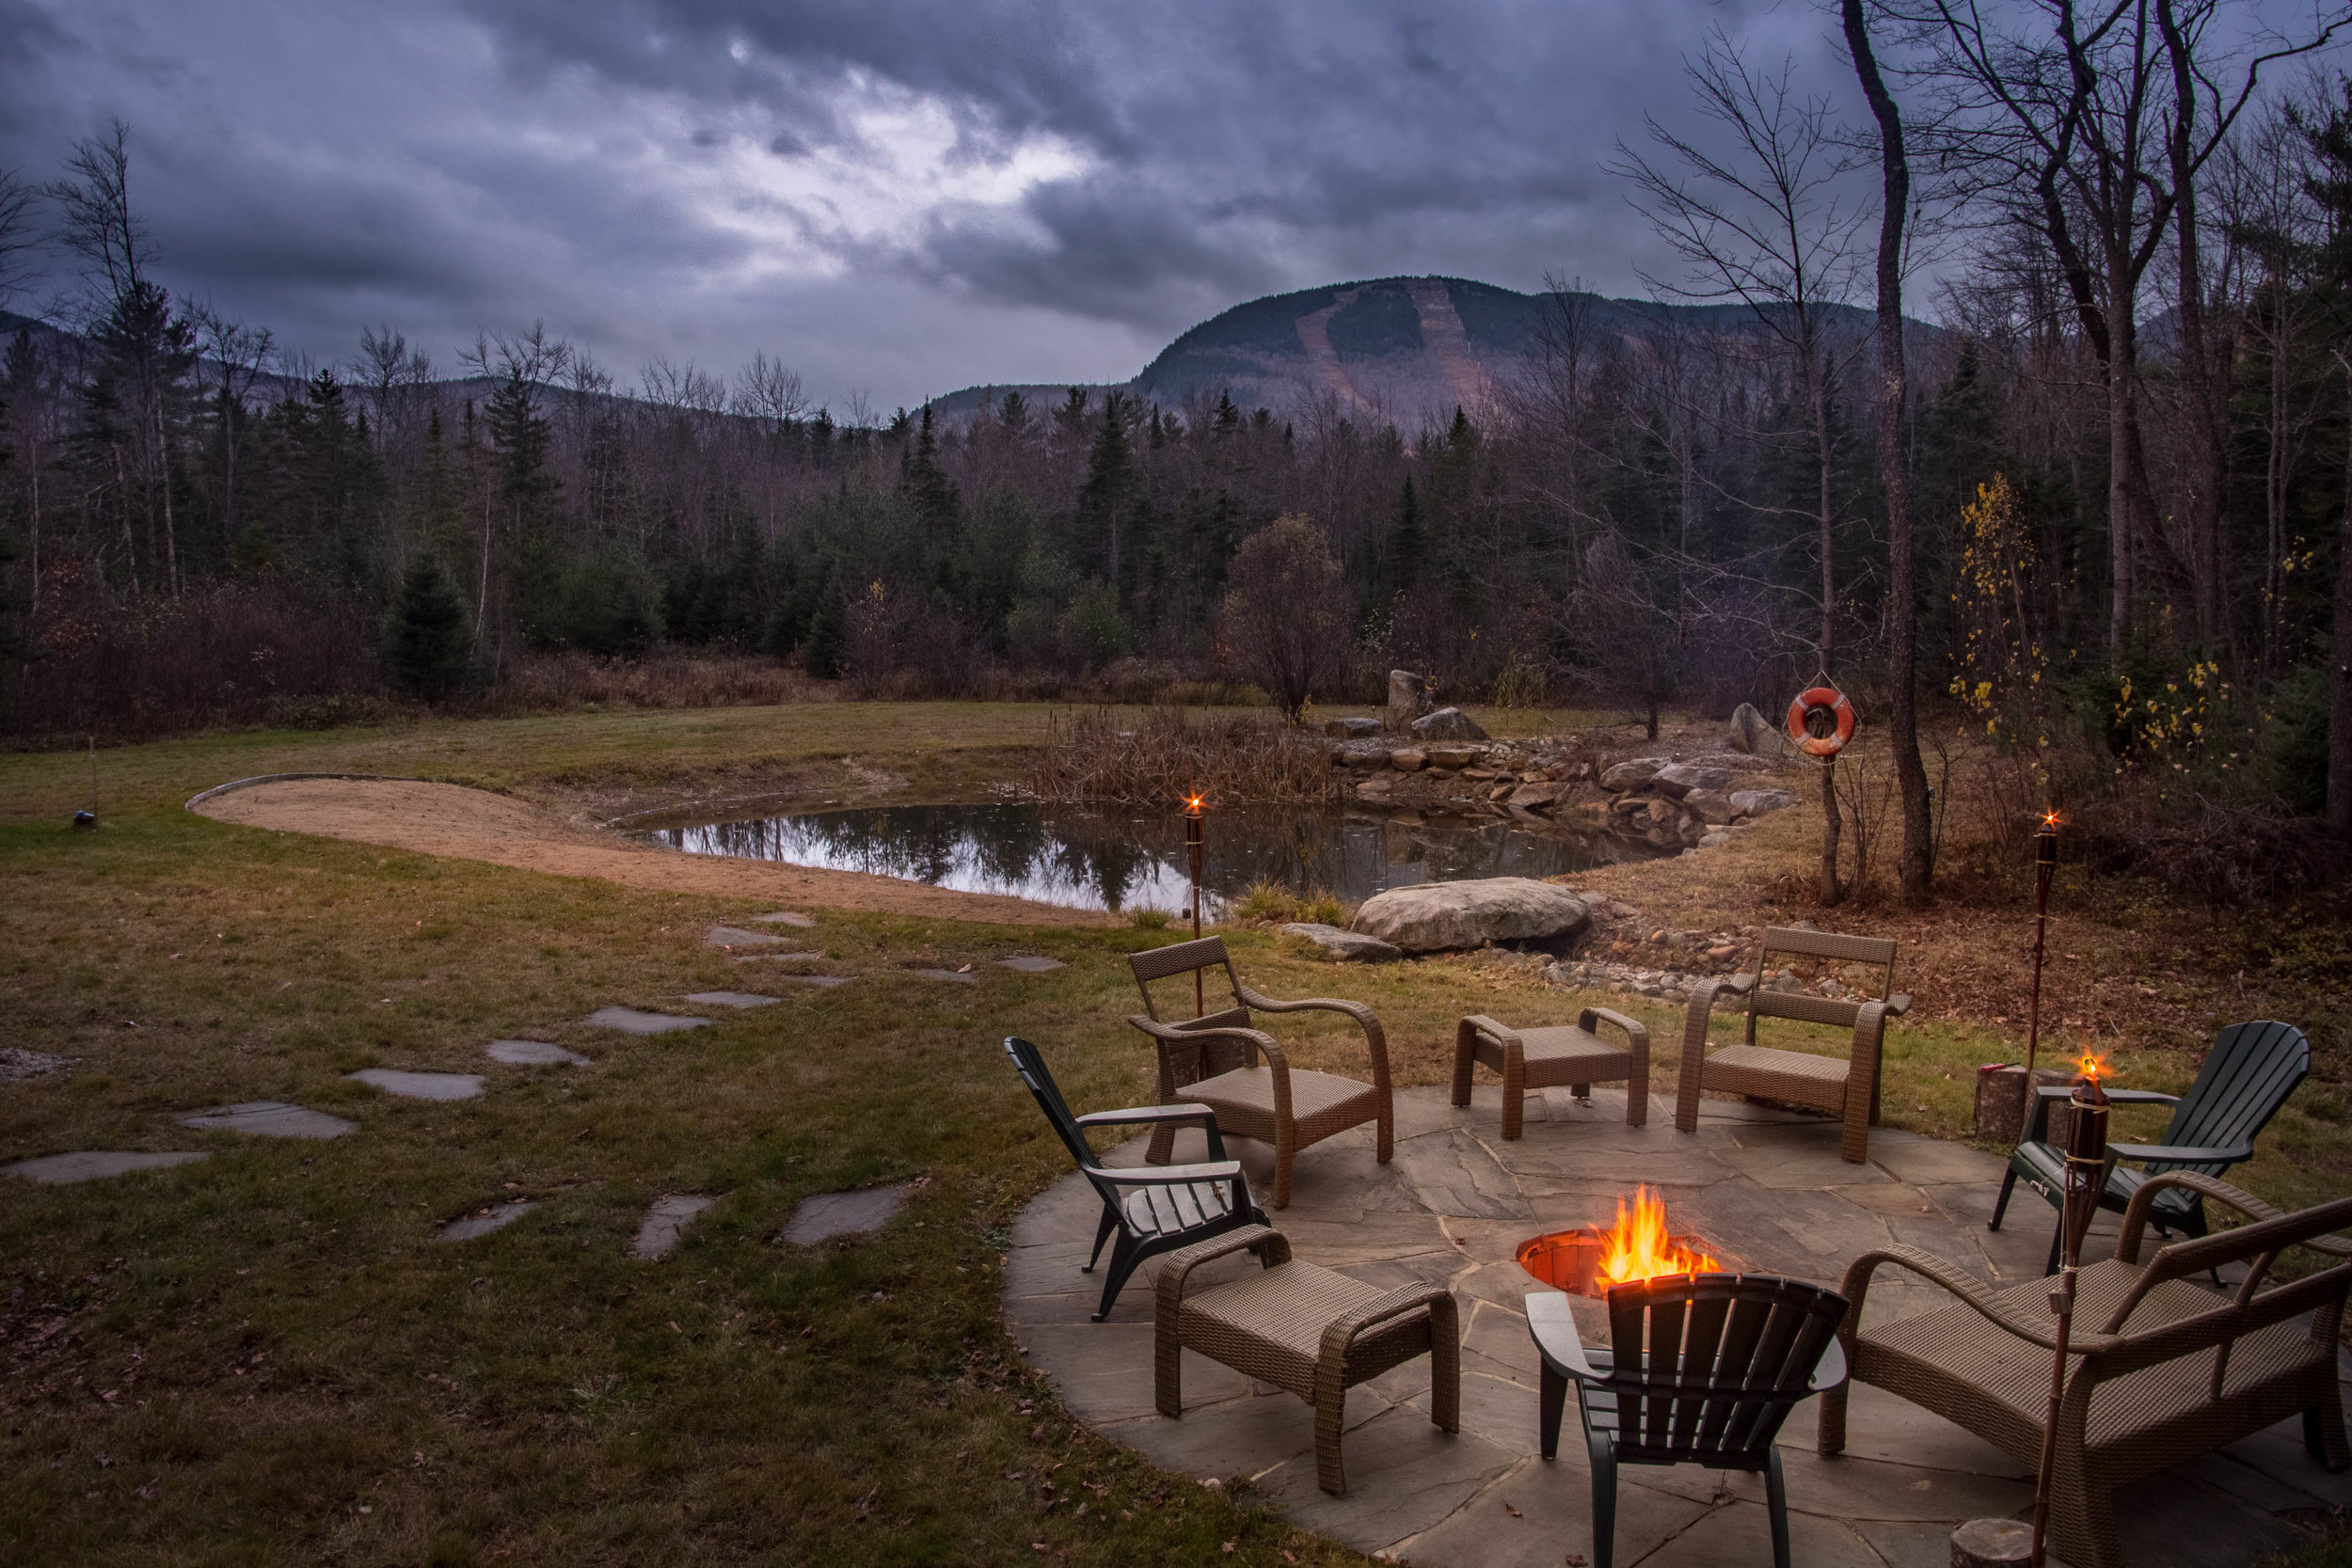 Twilight around the fire pit